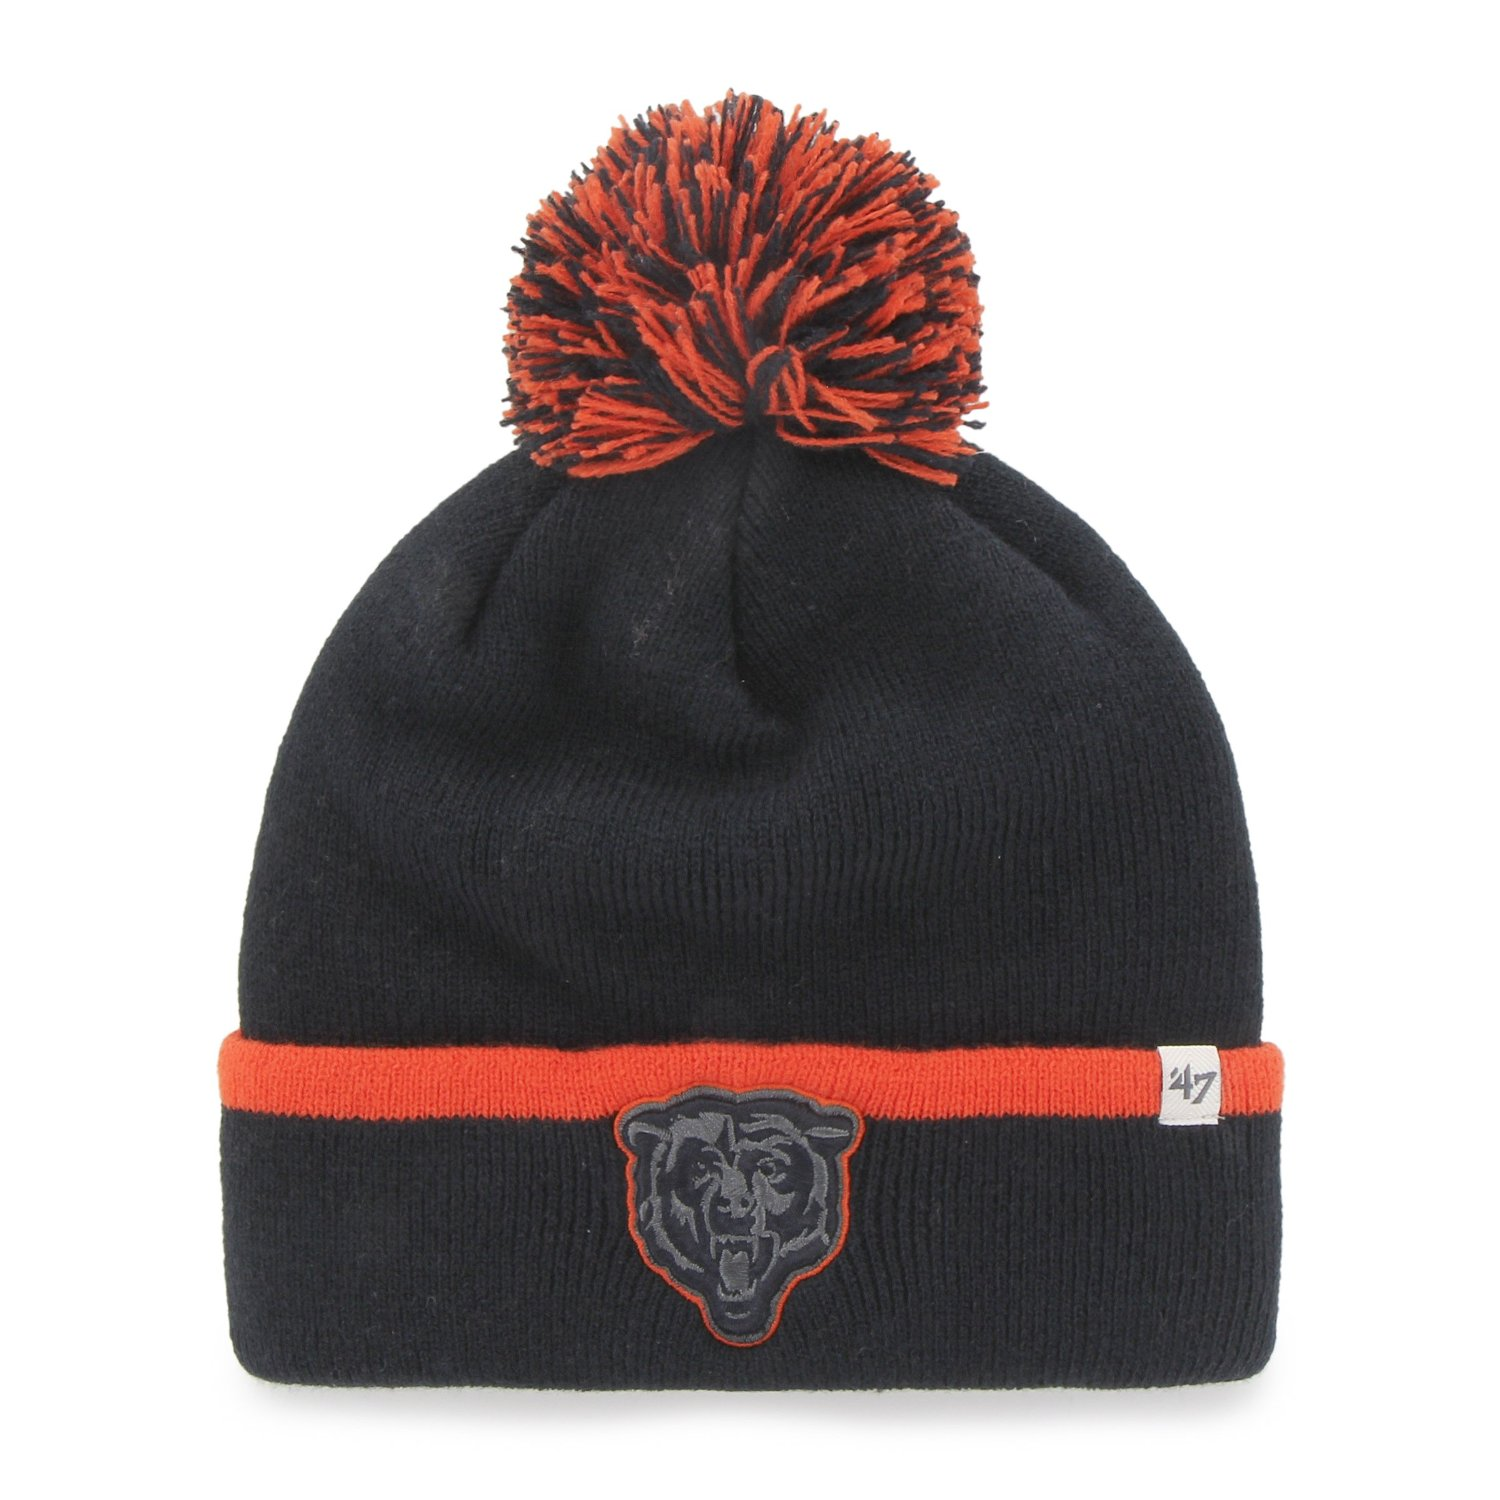 Chicago Bears Navy Baraka Cuffed Knit Hat by 47 Brand